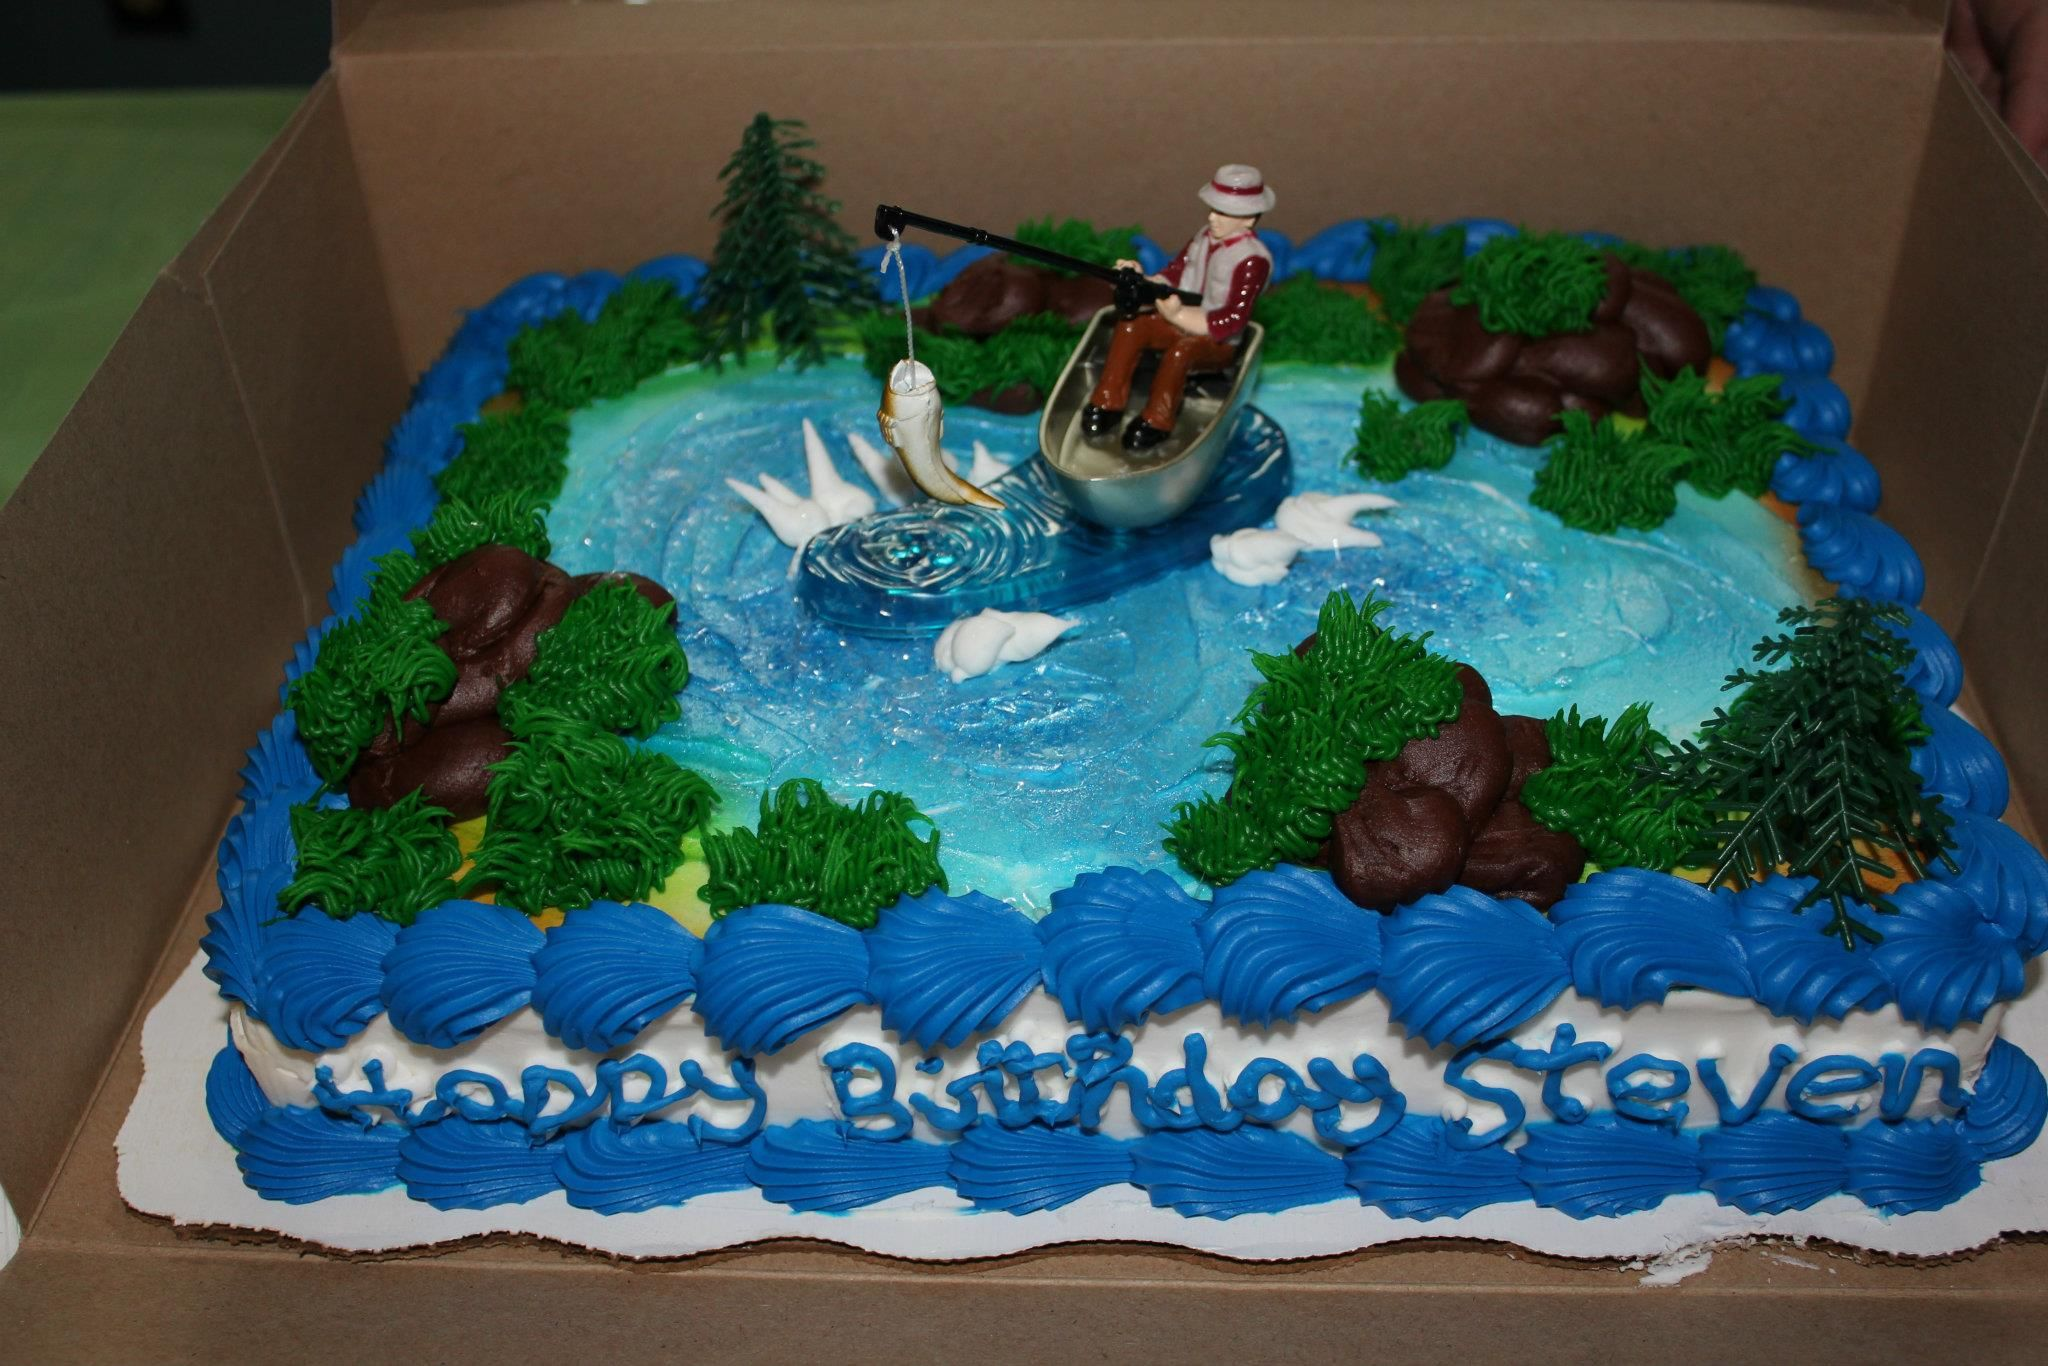 Astonishing Fishing Theme Birthday Cake Walmart Bakery 20 Walmart Funny Birthday Cards Online Alyptdamsfinfo